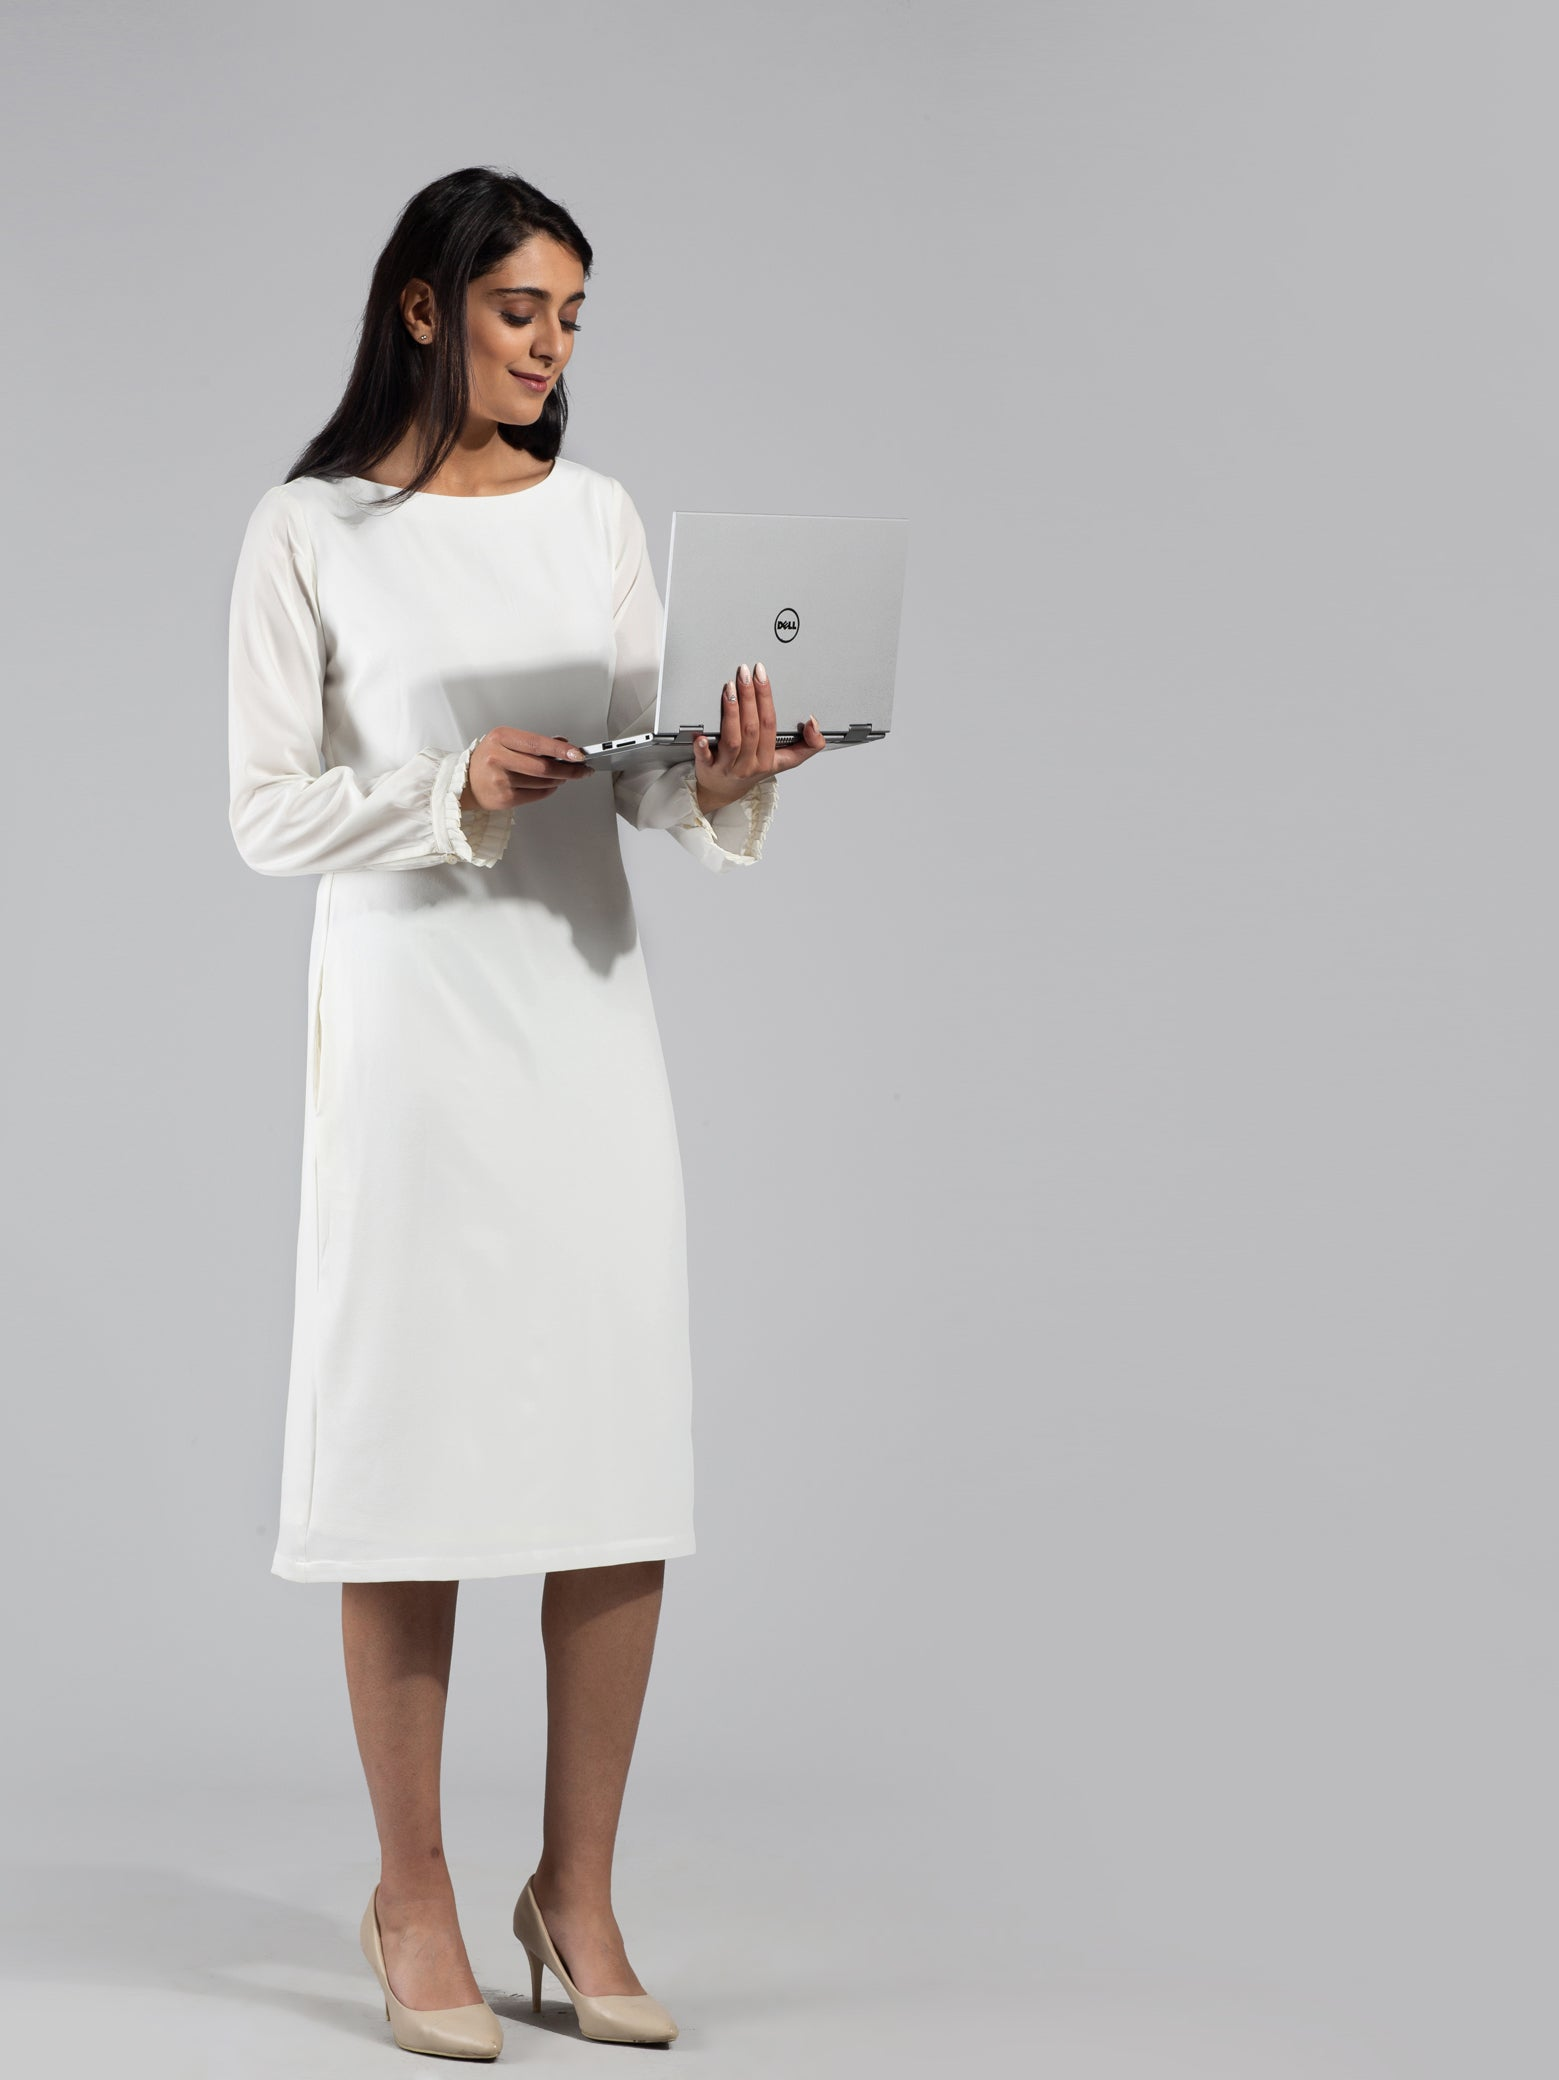 Full Sleeve Ruffle Detail Below Knee Shift Dress - Off White